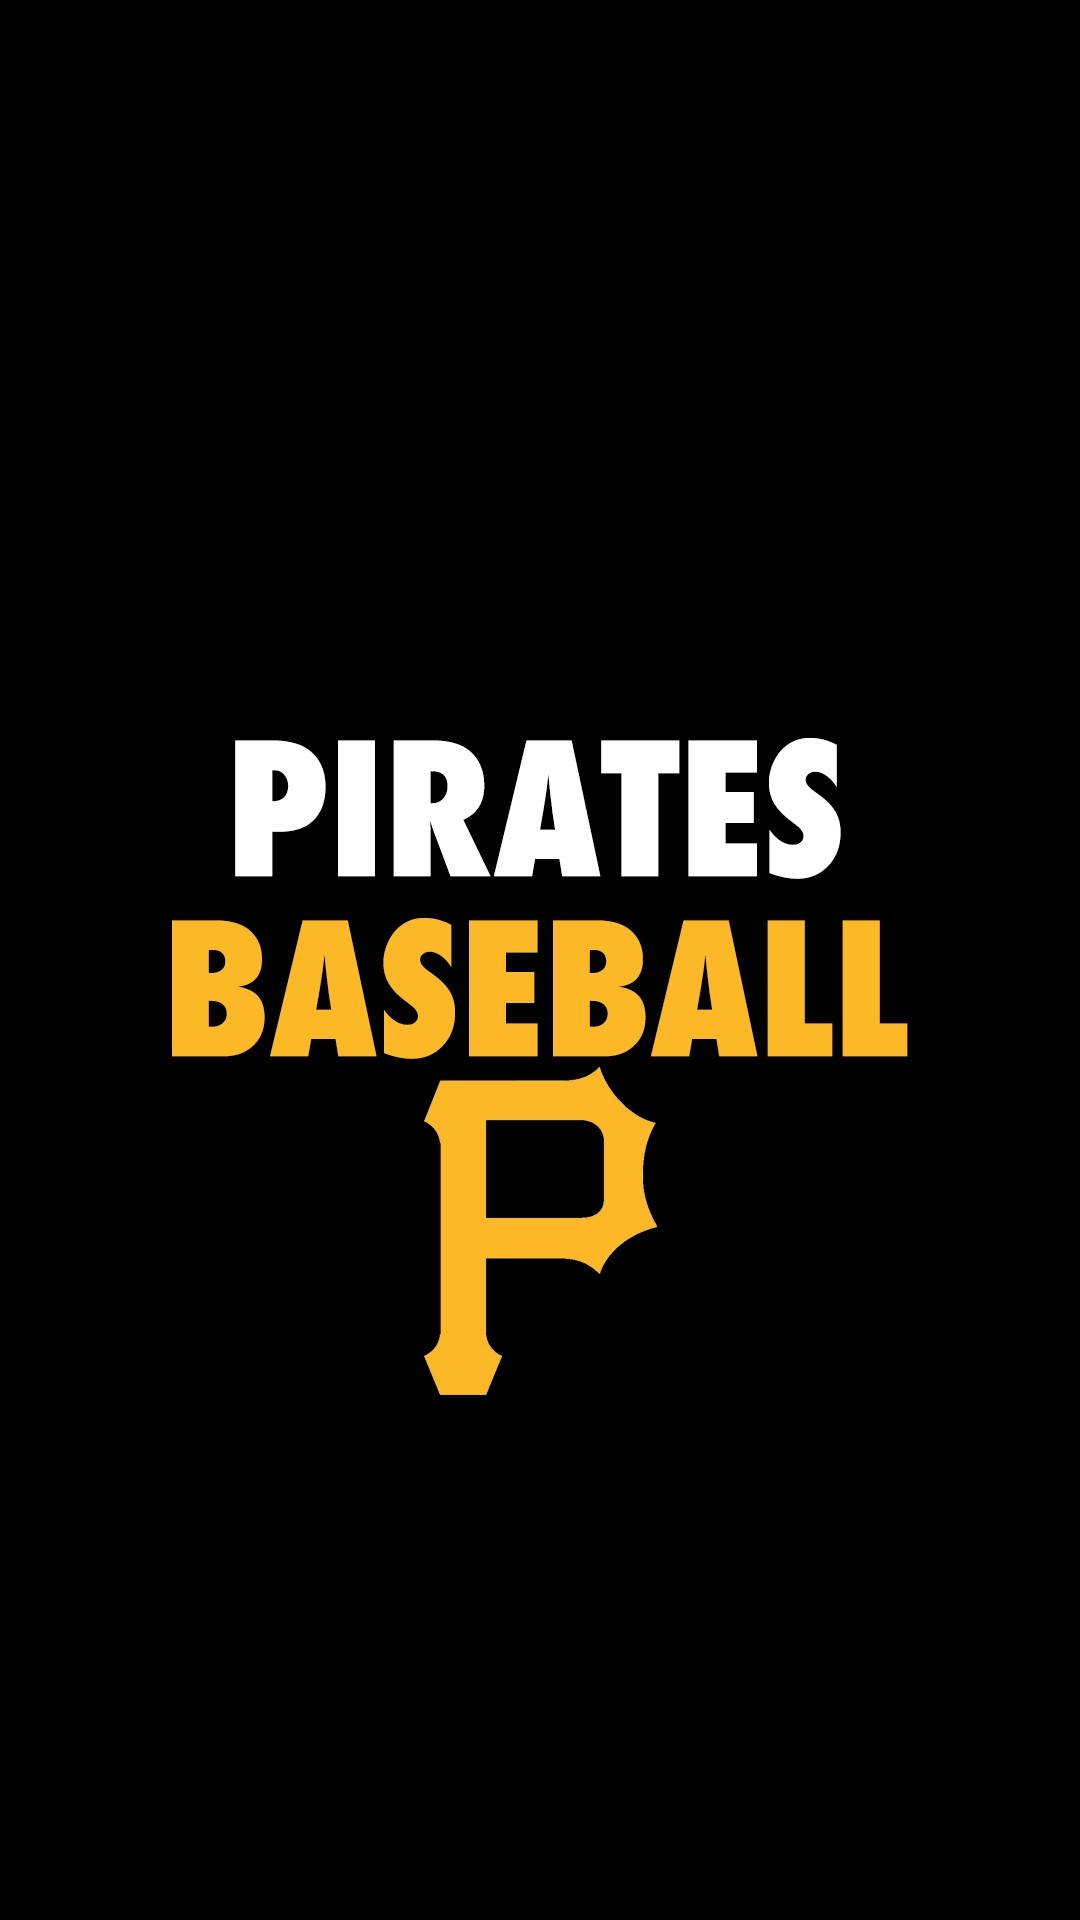 pittsburgh pirates iphone wallpaper (60+ images)